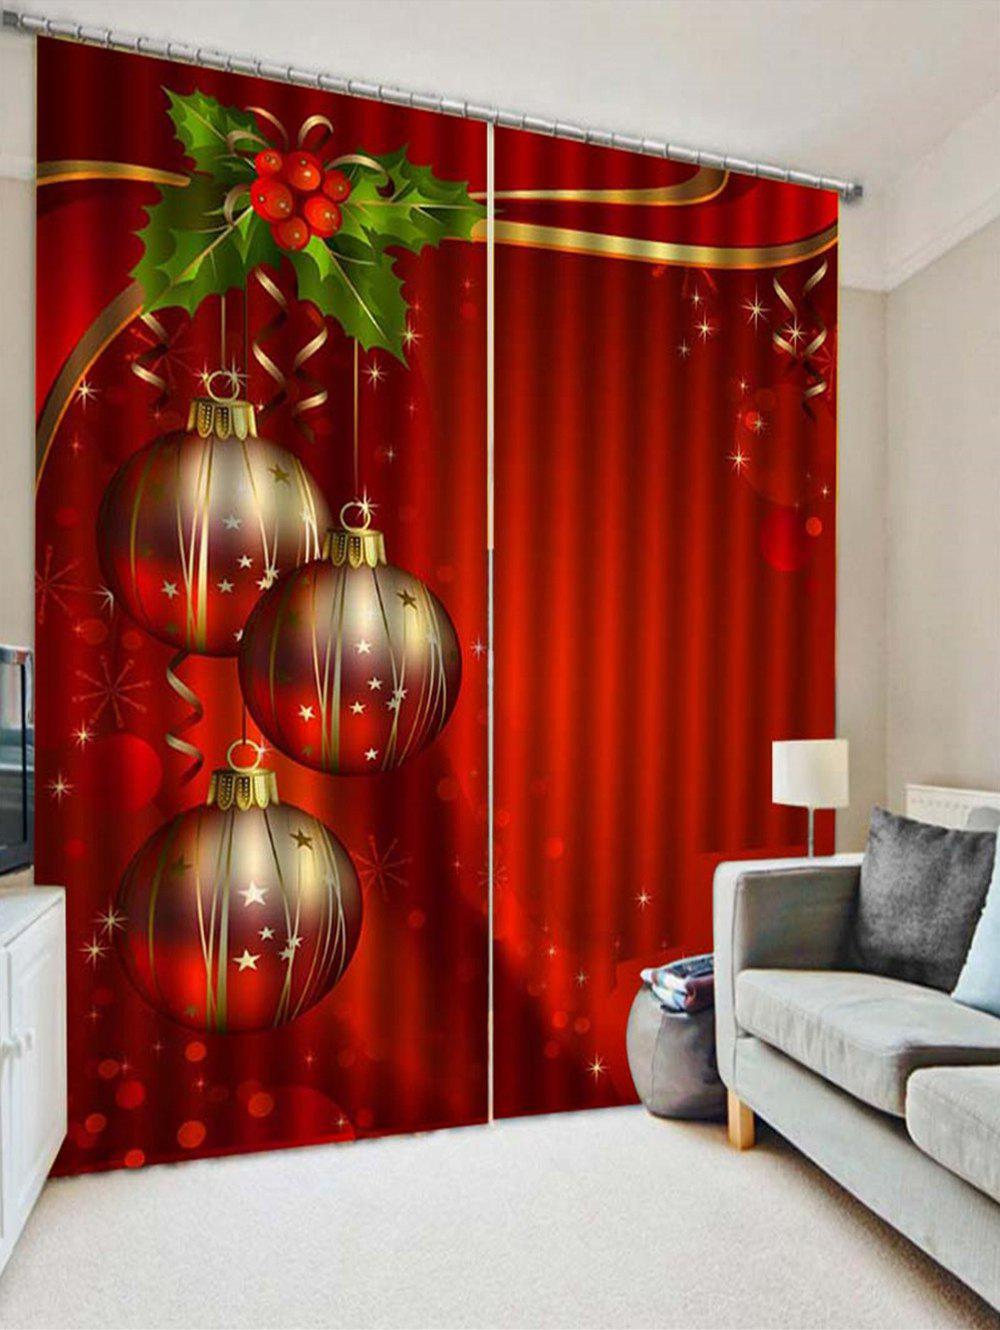 Online 2PCS Christmas Ball Leaf Printed Window Curtains